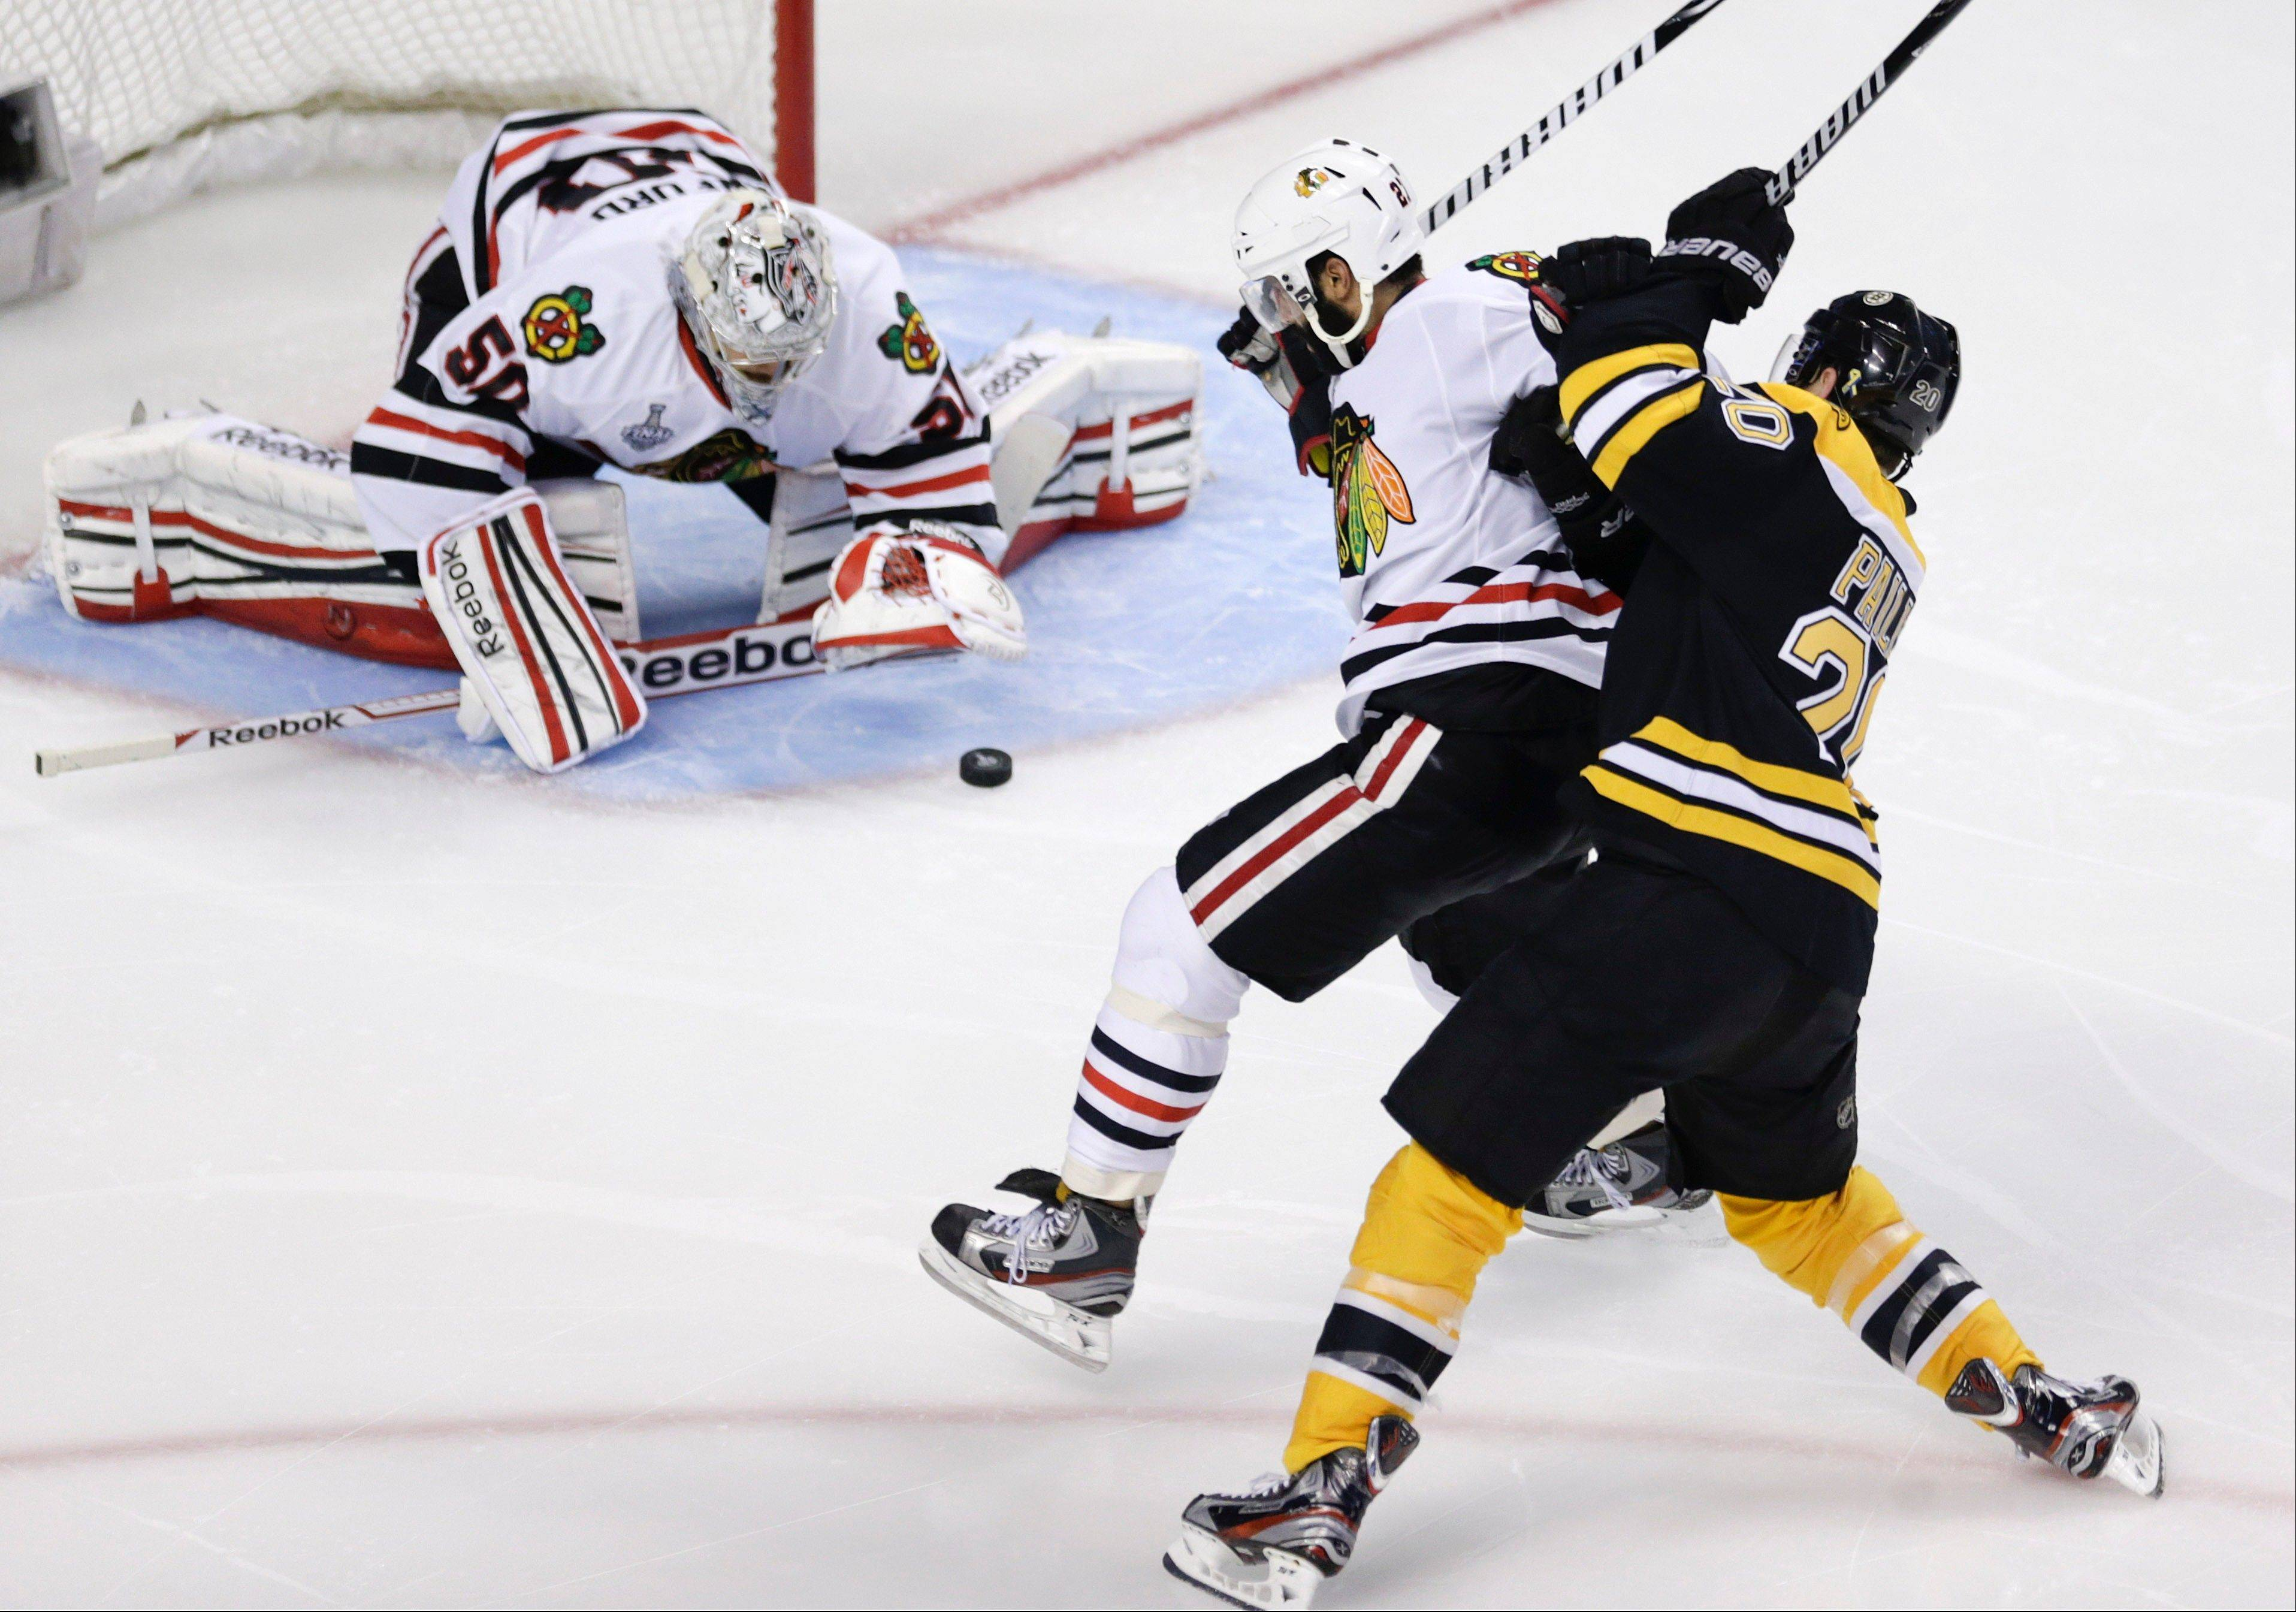 Boston Bruins left wing Daniel Paille (20) ties up Chicago Blackhawks defenseman Johnny Oduya (27), in front of Blackhawks goalie Corey Crawford (50) during the second period in Game 6 of the NHL Stanley Cup Finals Monday in Boston.